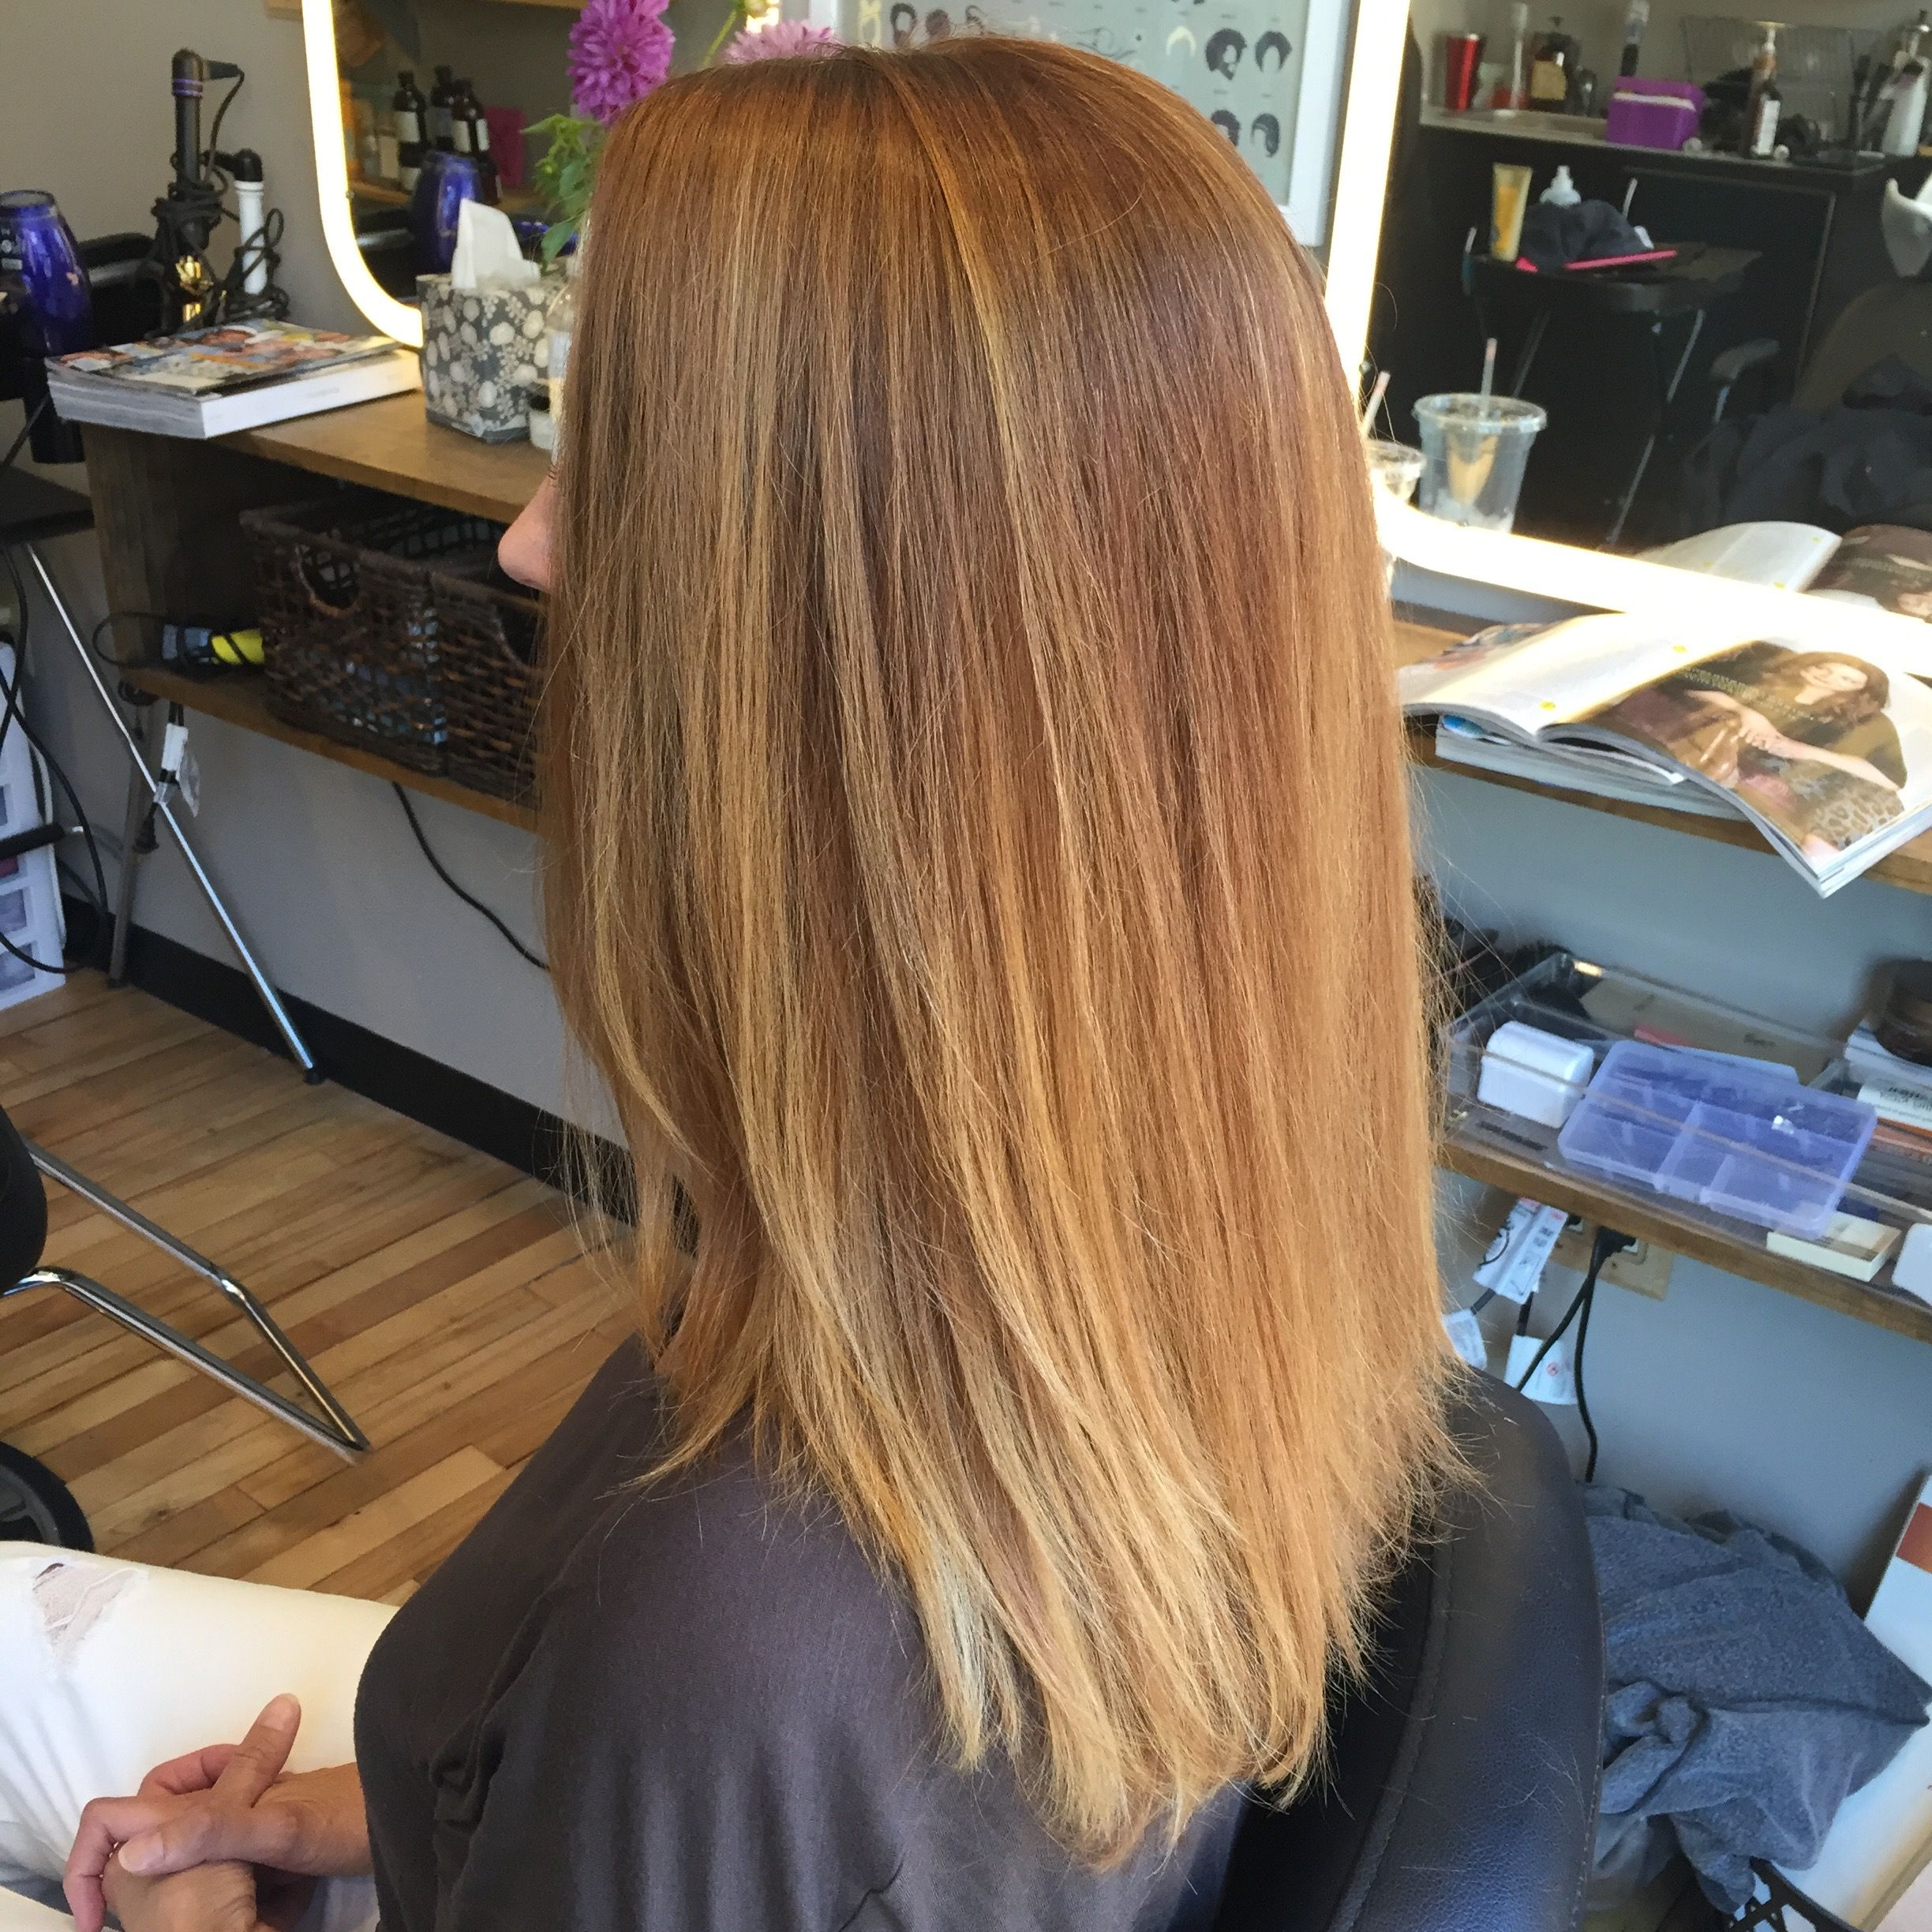 Red Hair, Balayage, Hair Painting, Highlights, Ombre Within Strawberry Blonde Balayage Hairstyles (View 8 of 20)